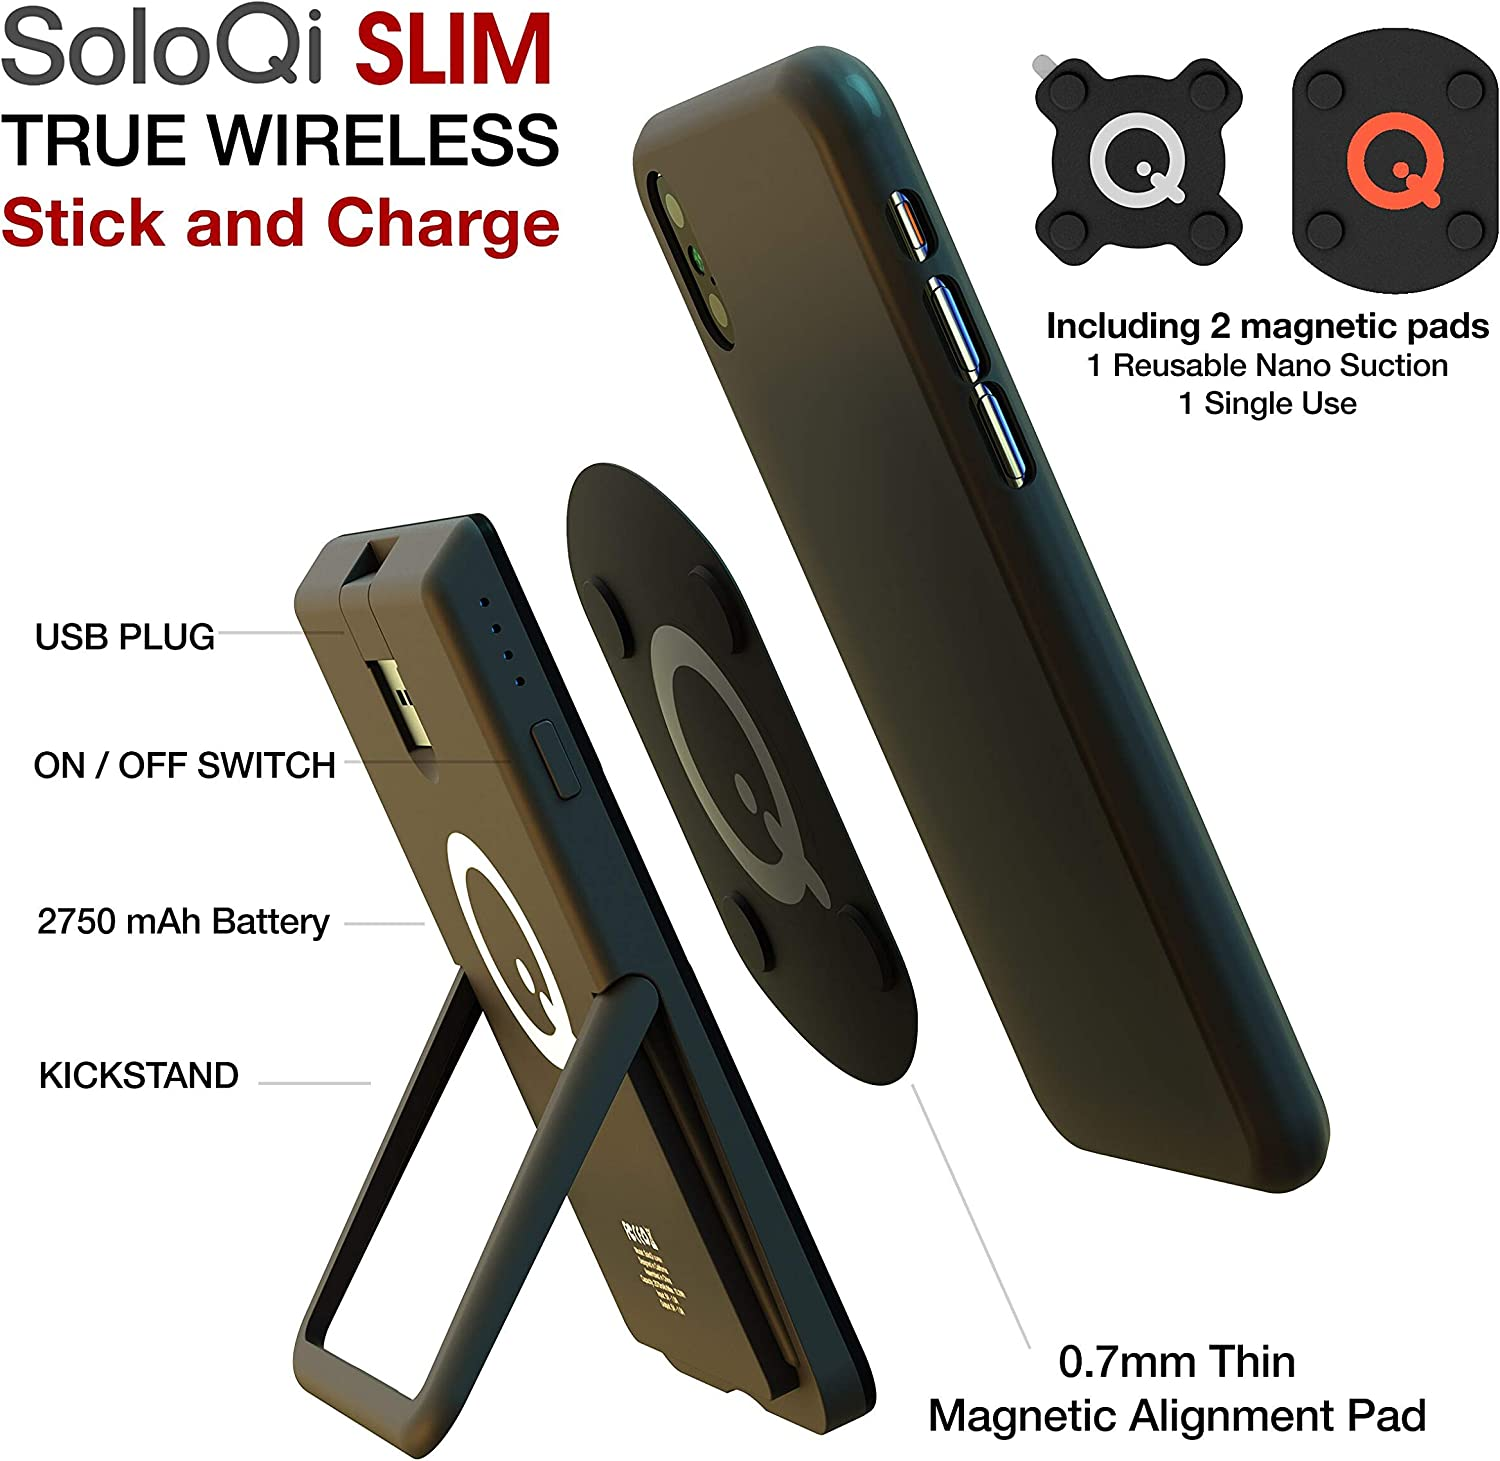 SoloQi Slim Portable Wireless Charger with Kickstand and Magnetic Pads